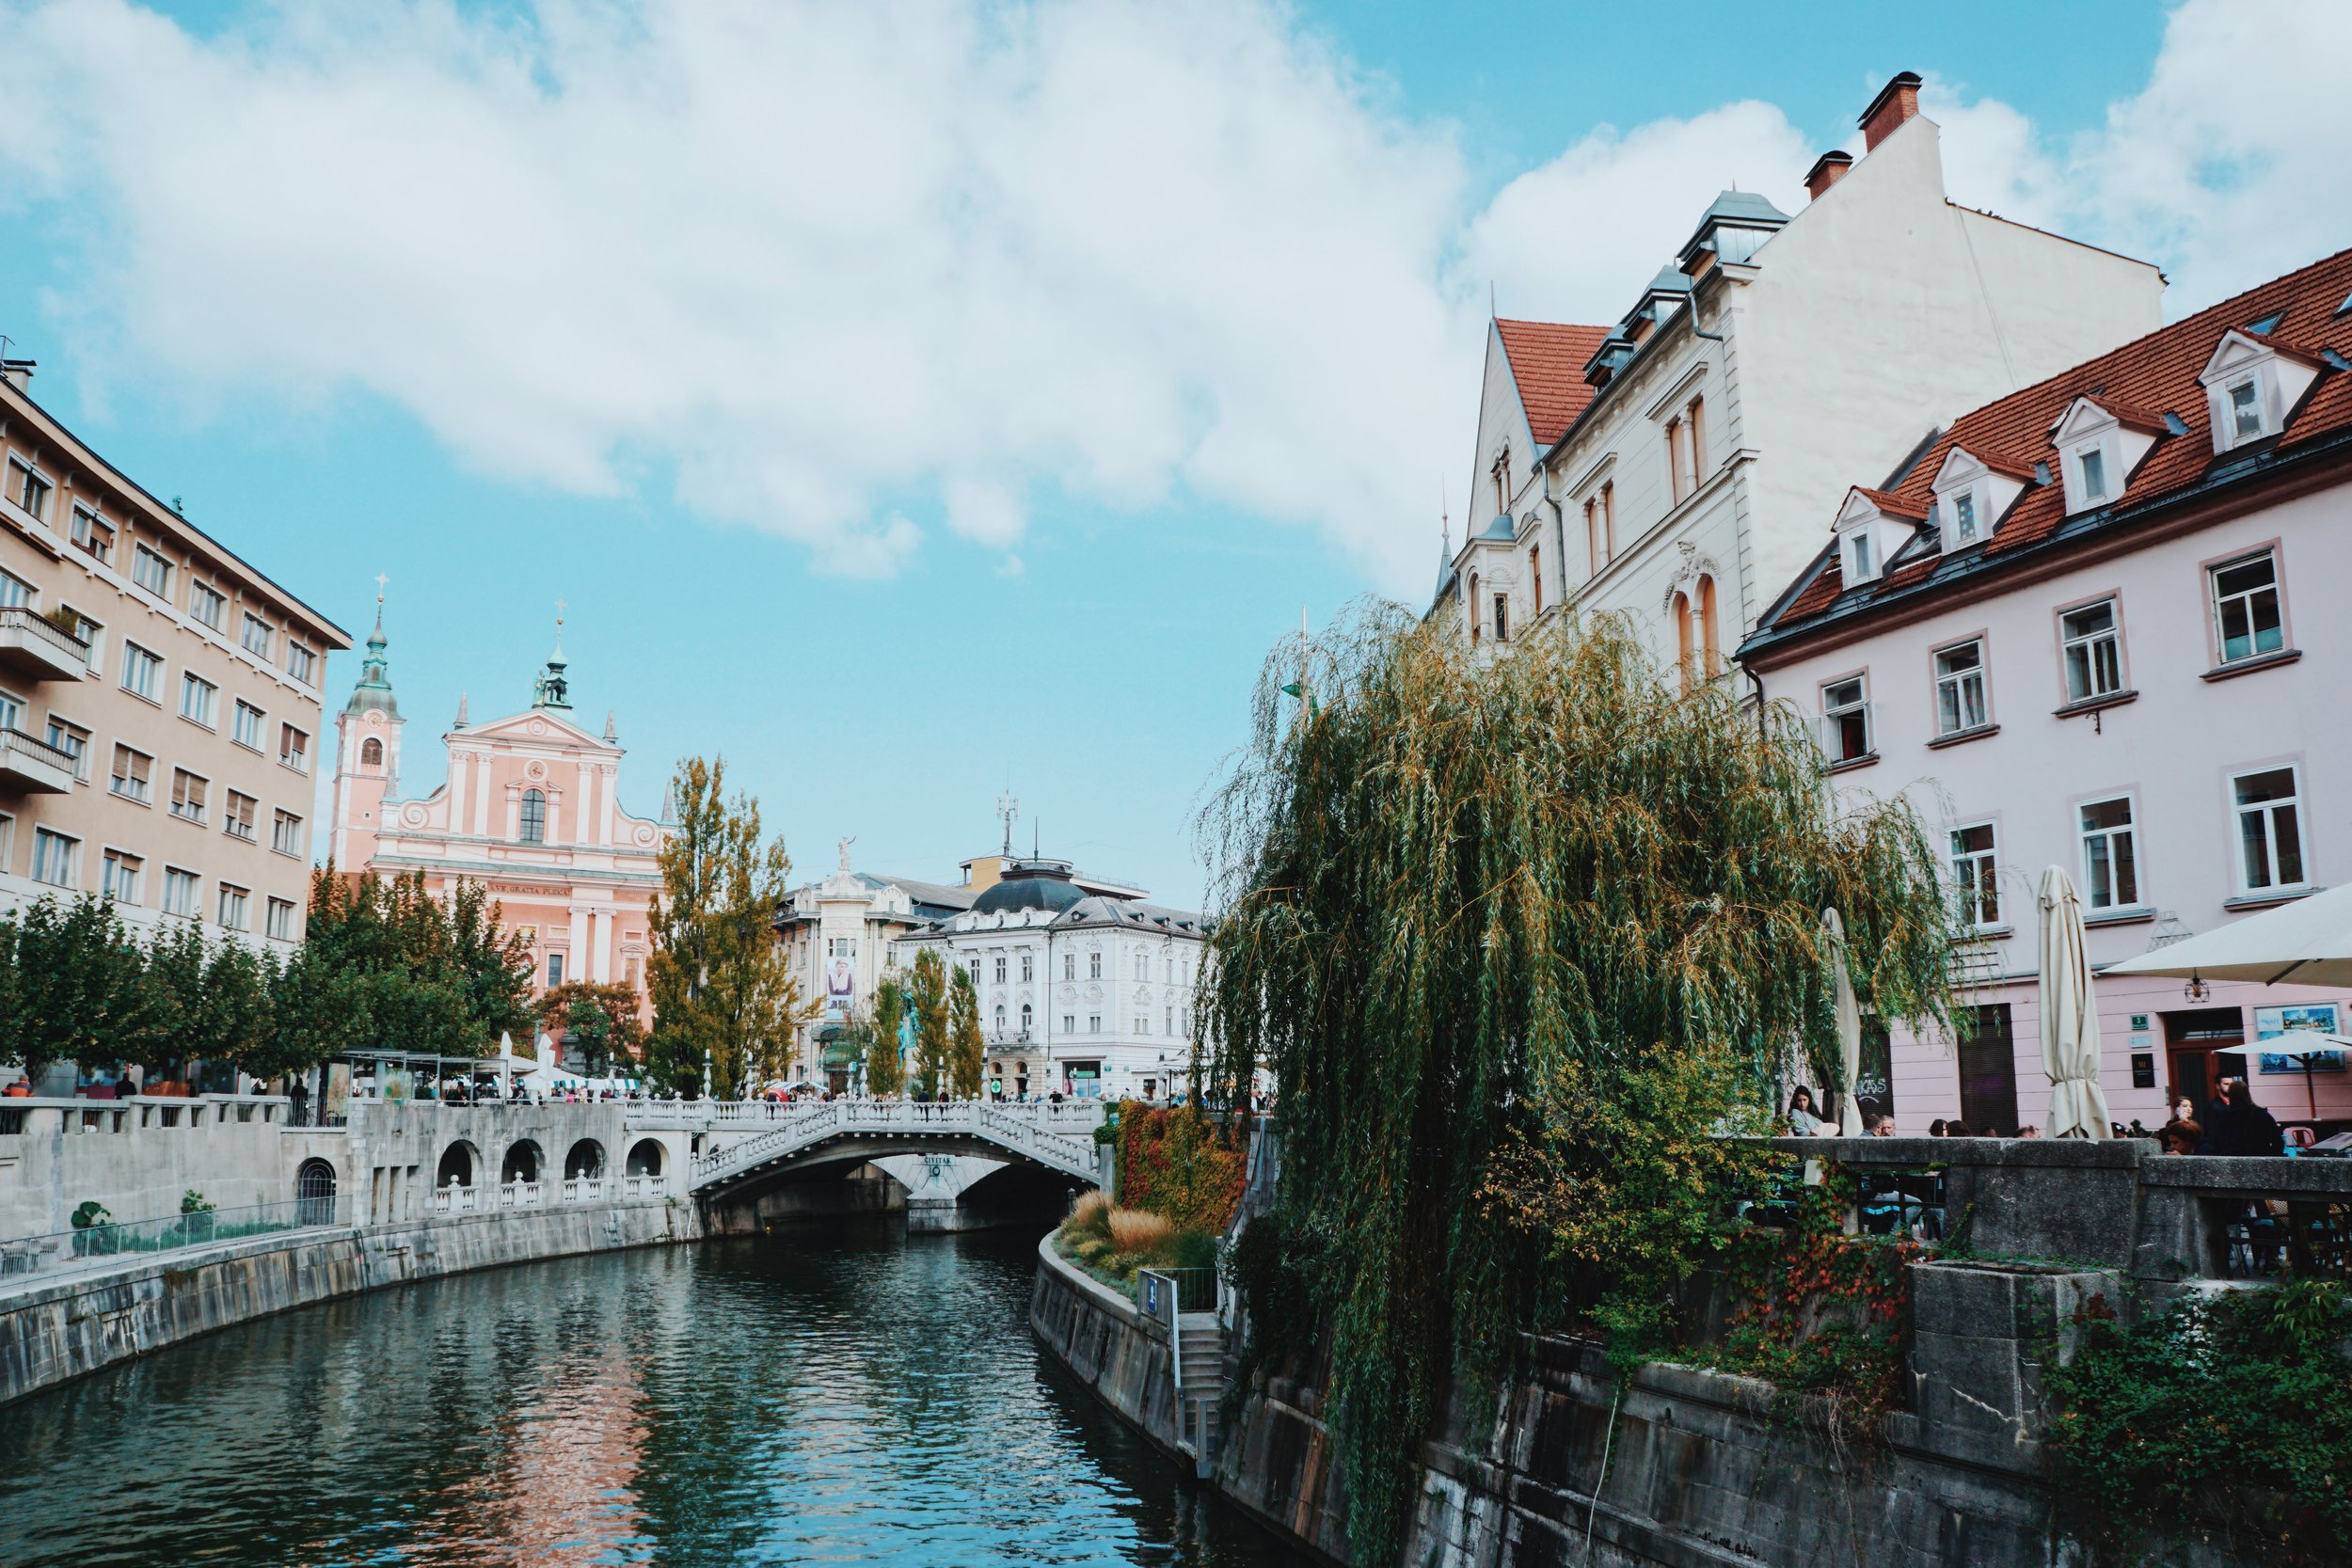 slovenia - Architectural masterpieces and nature to boot